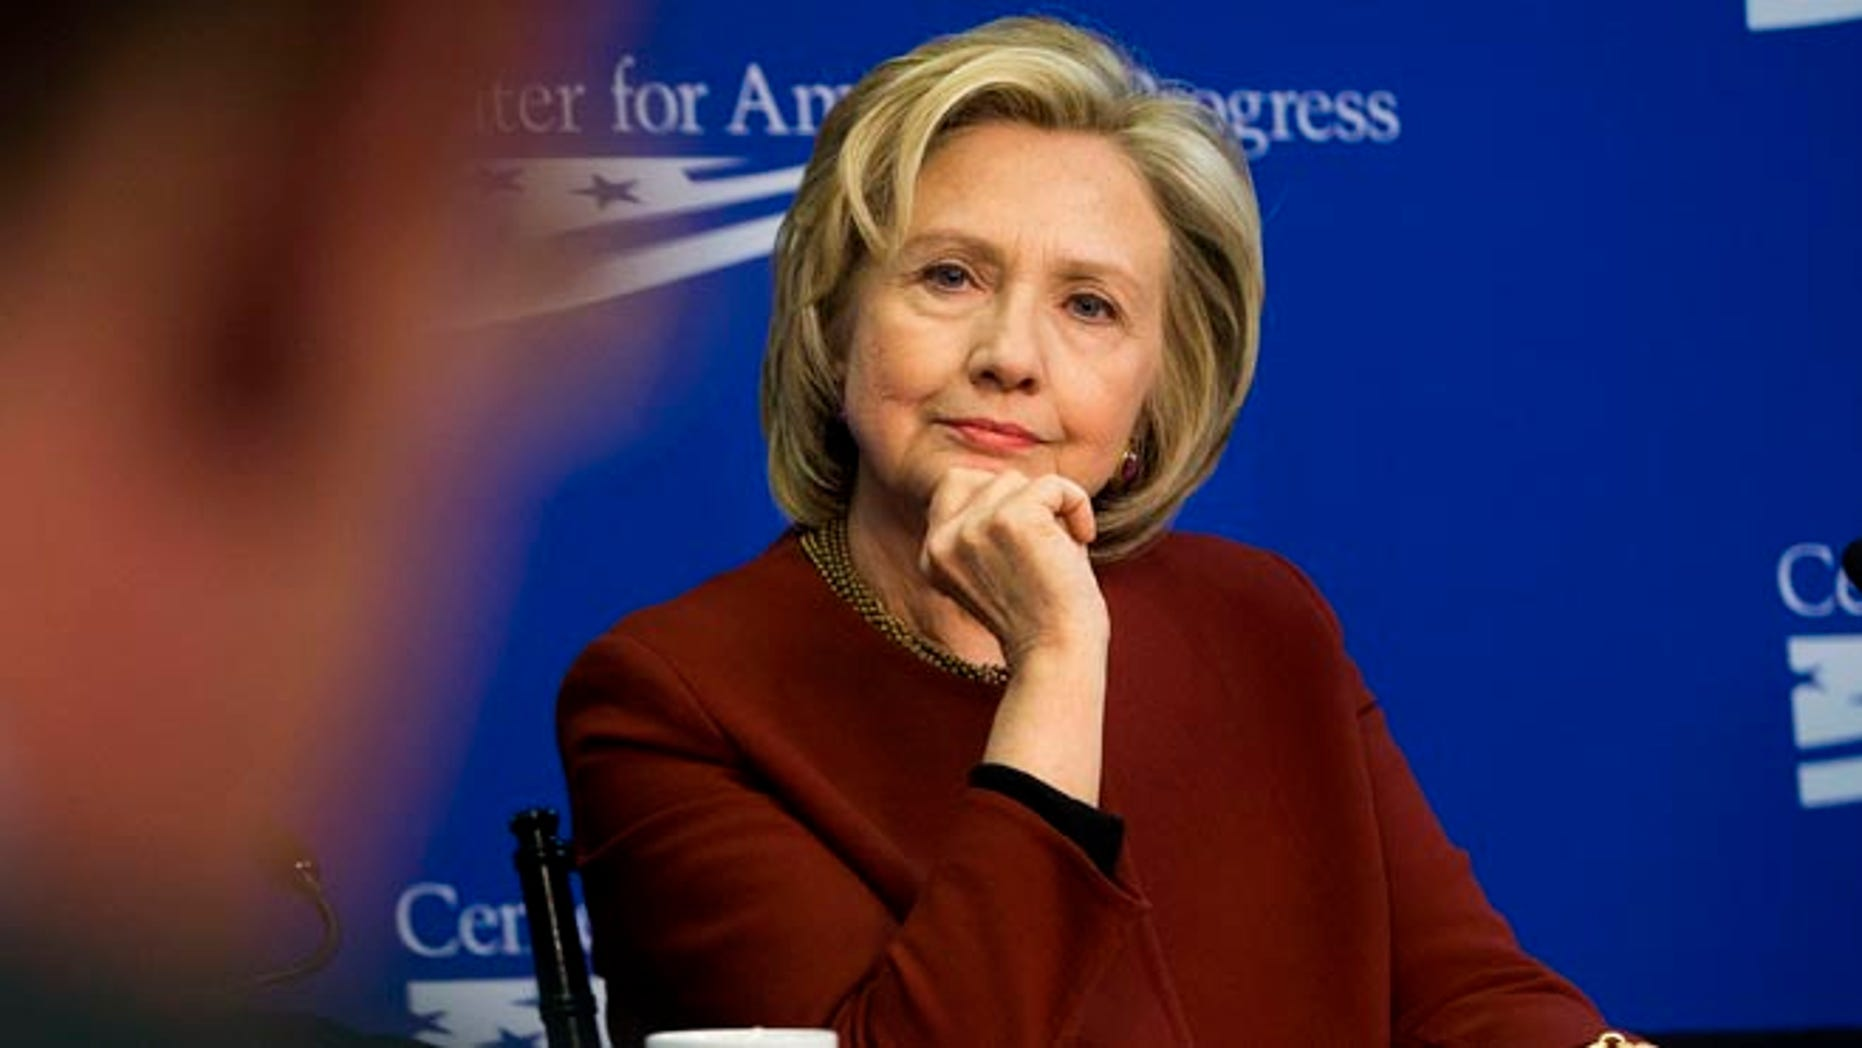 In this photo taken March 23, 2015, former Secretary of State Hillary Rodham Clinton listens during an event hosted by the Center for American Progress (CAP) and the America Federation of State, County and Municipal Employees (AFSCME), in Washington.  A final nuclear deal with Iran would enable Clinton to claim a piece of the victory. But if negotiations fall apart or produce an agreement that lets Iran pursue a bomb, Clinton would own a piece of the failure. The likely Democratic presidential candidate and former secretary of state seems well aware of the implications.  (AP Photo/Pablo Martinez Monsivais)